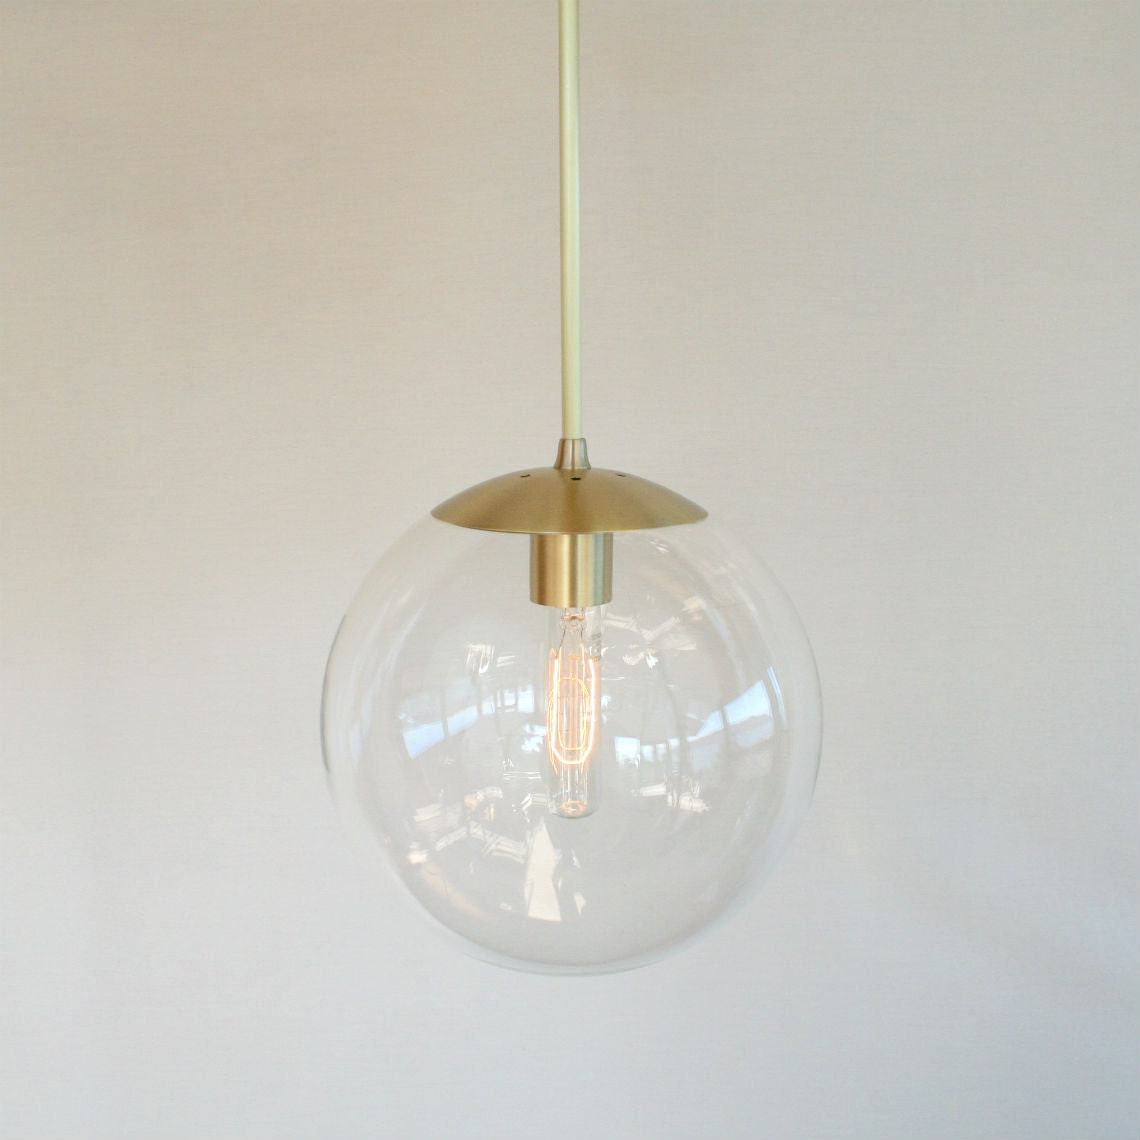 Mid century modern 10 globe pendant light clear glass for Mid century modern pendant light fixtures